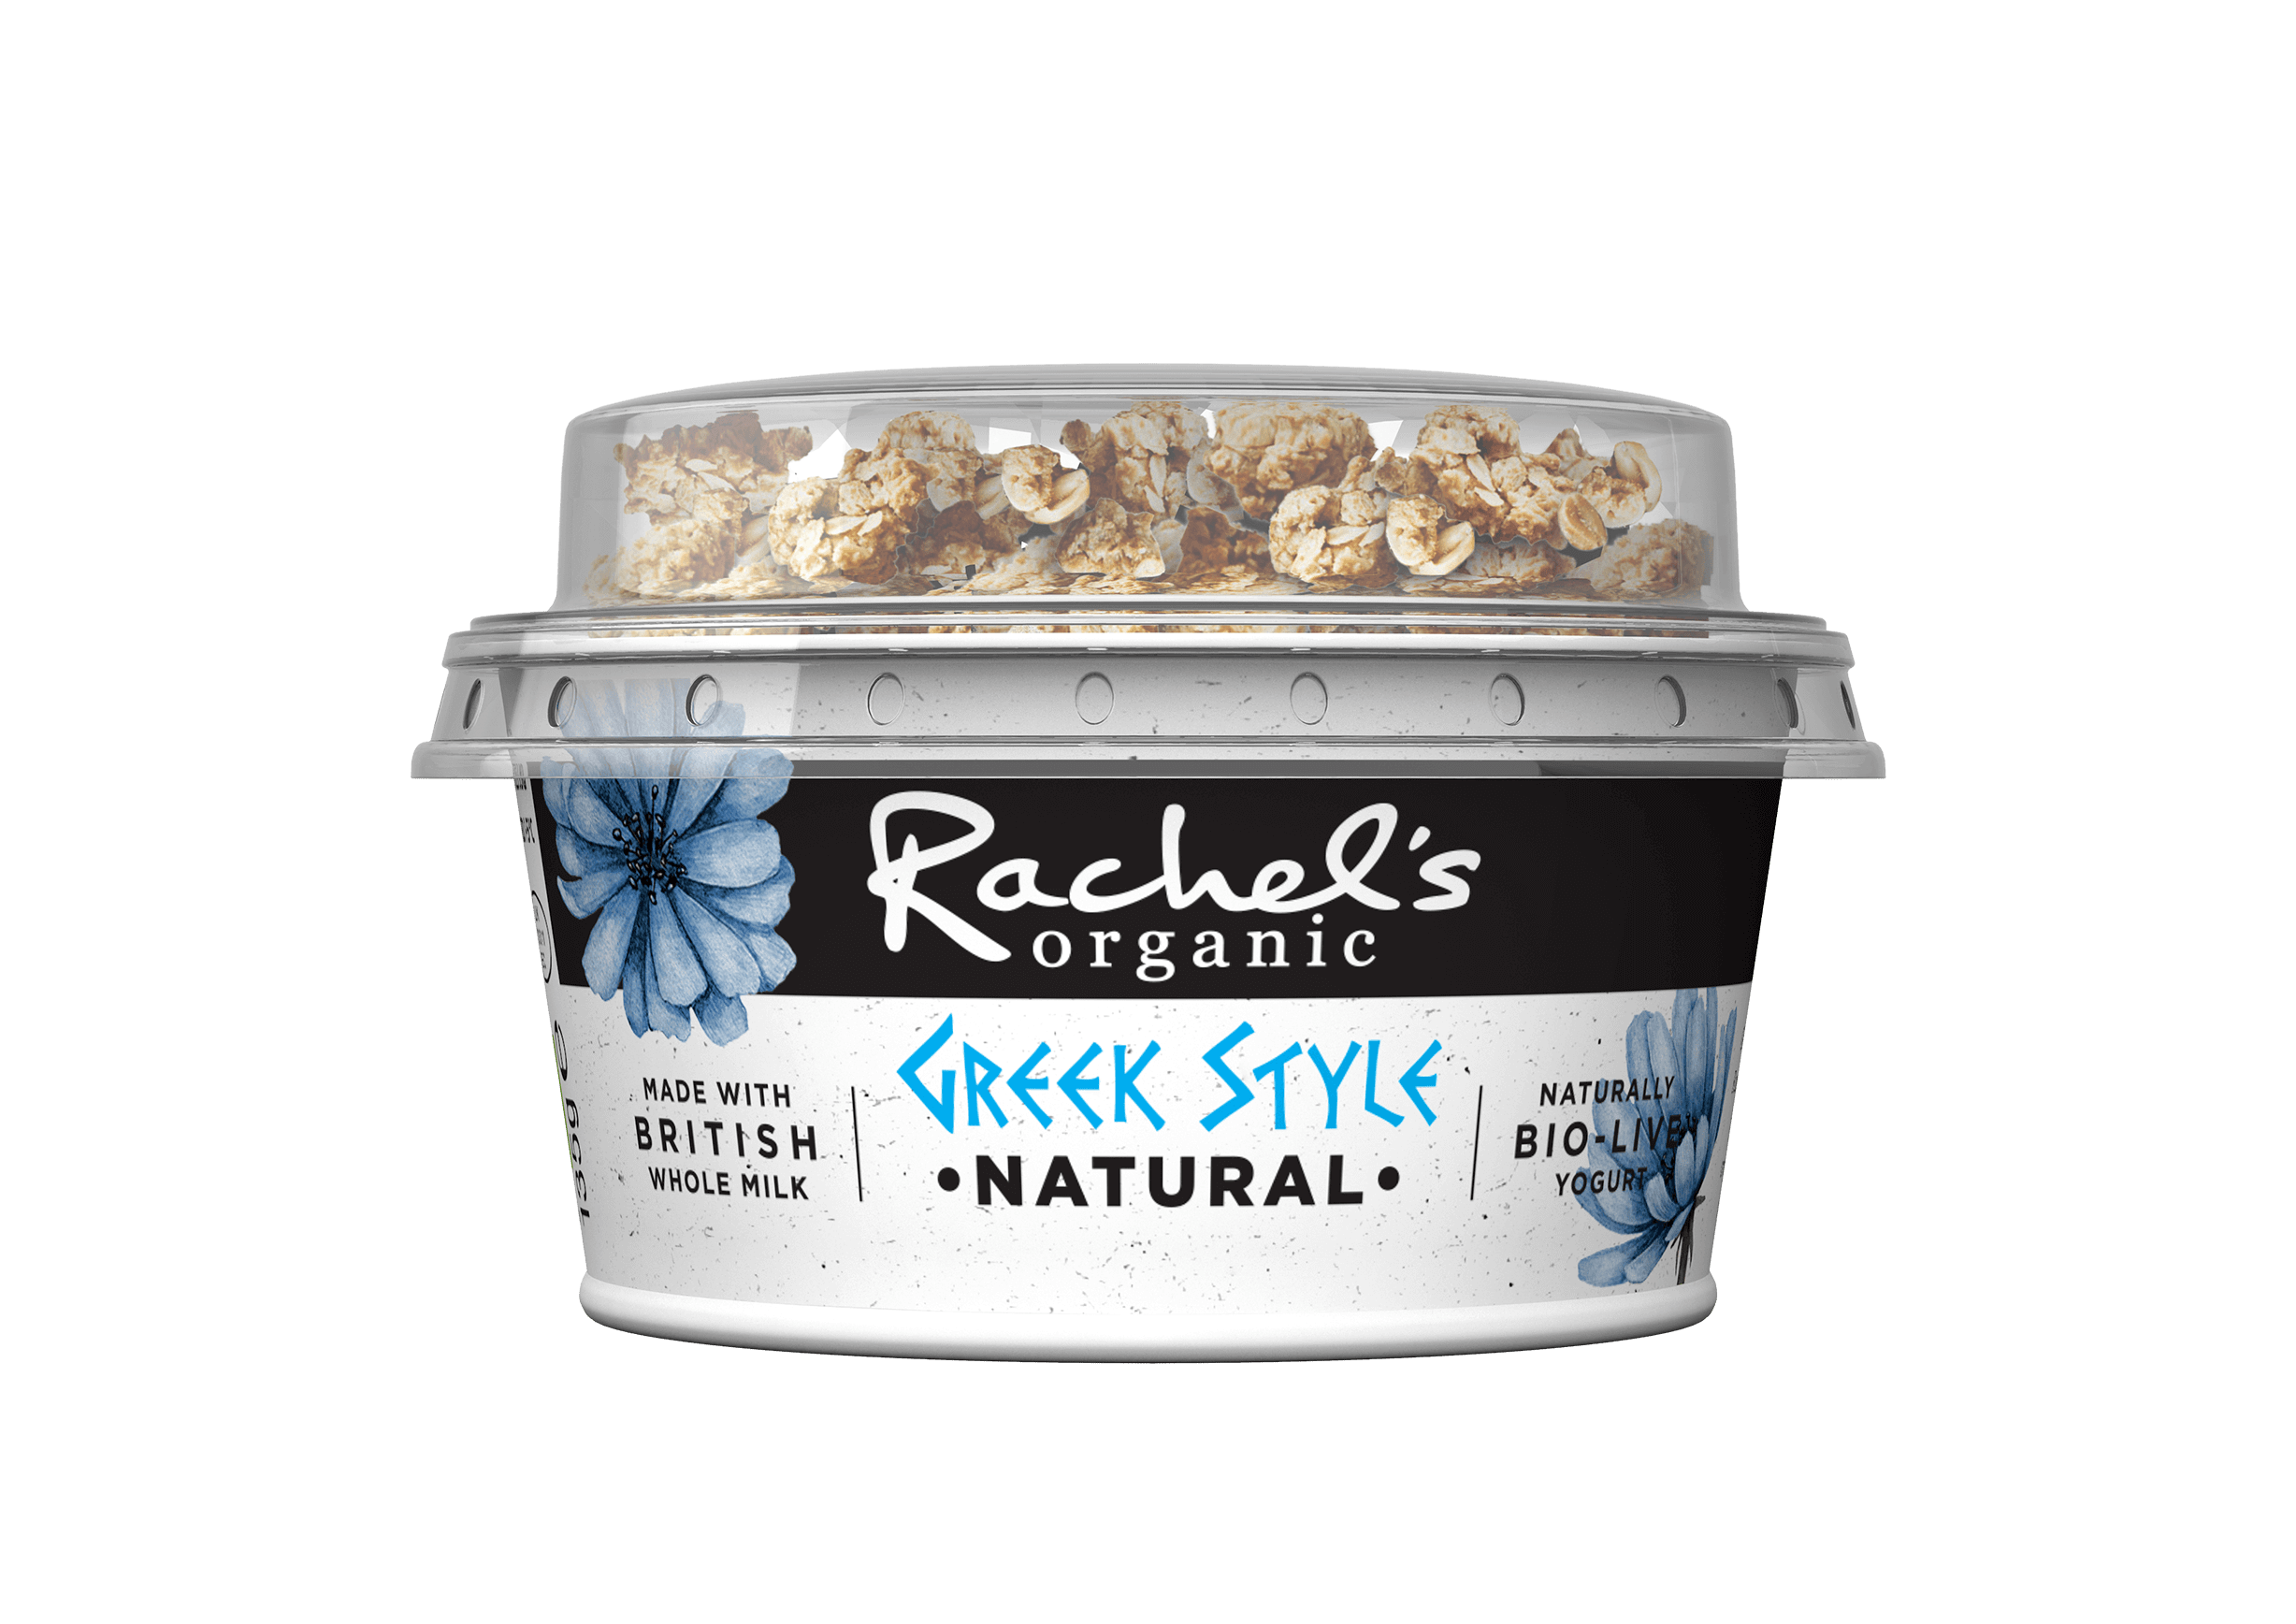 https://www.rachelsorganic.co.uk/wp-content/uploads/2019/12/5021638000342-3D-RACHELS-135G-POT-GREEK-STYLE-NATURAL.png